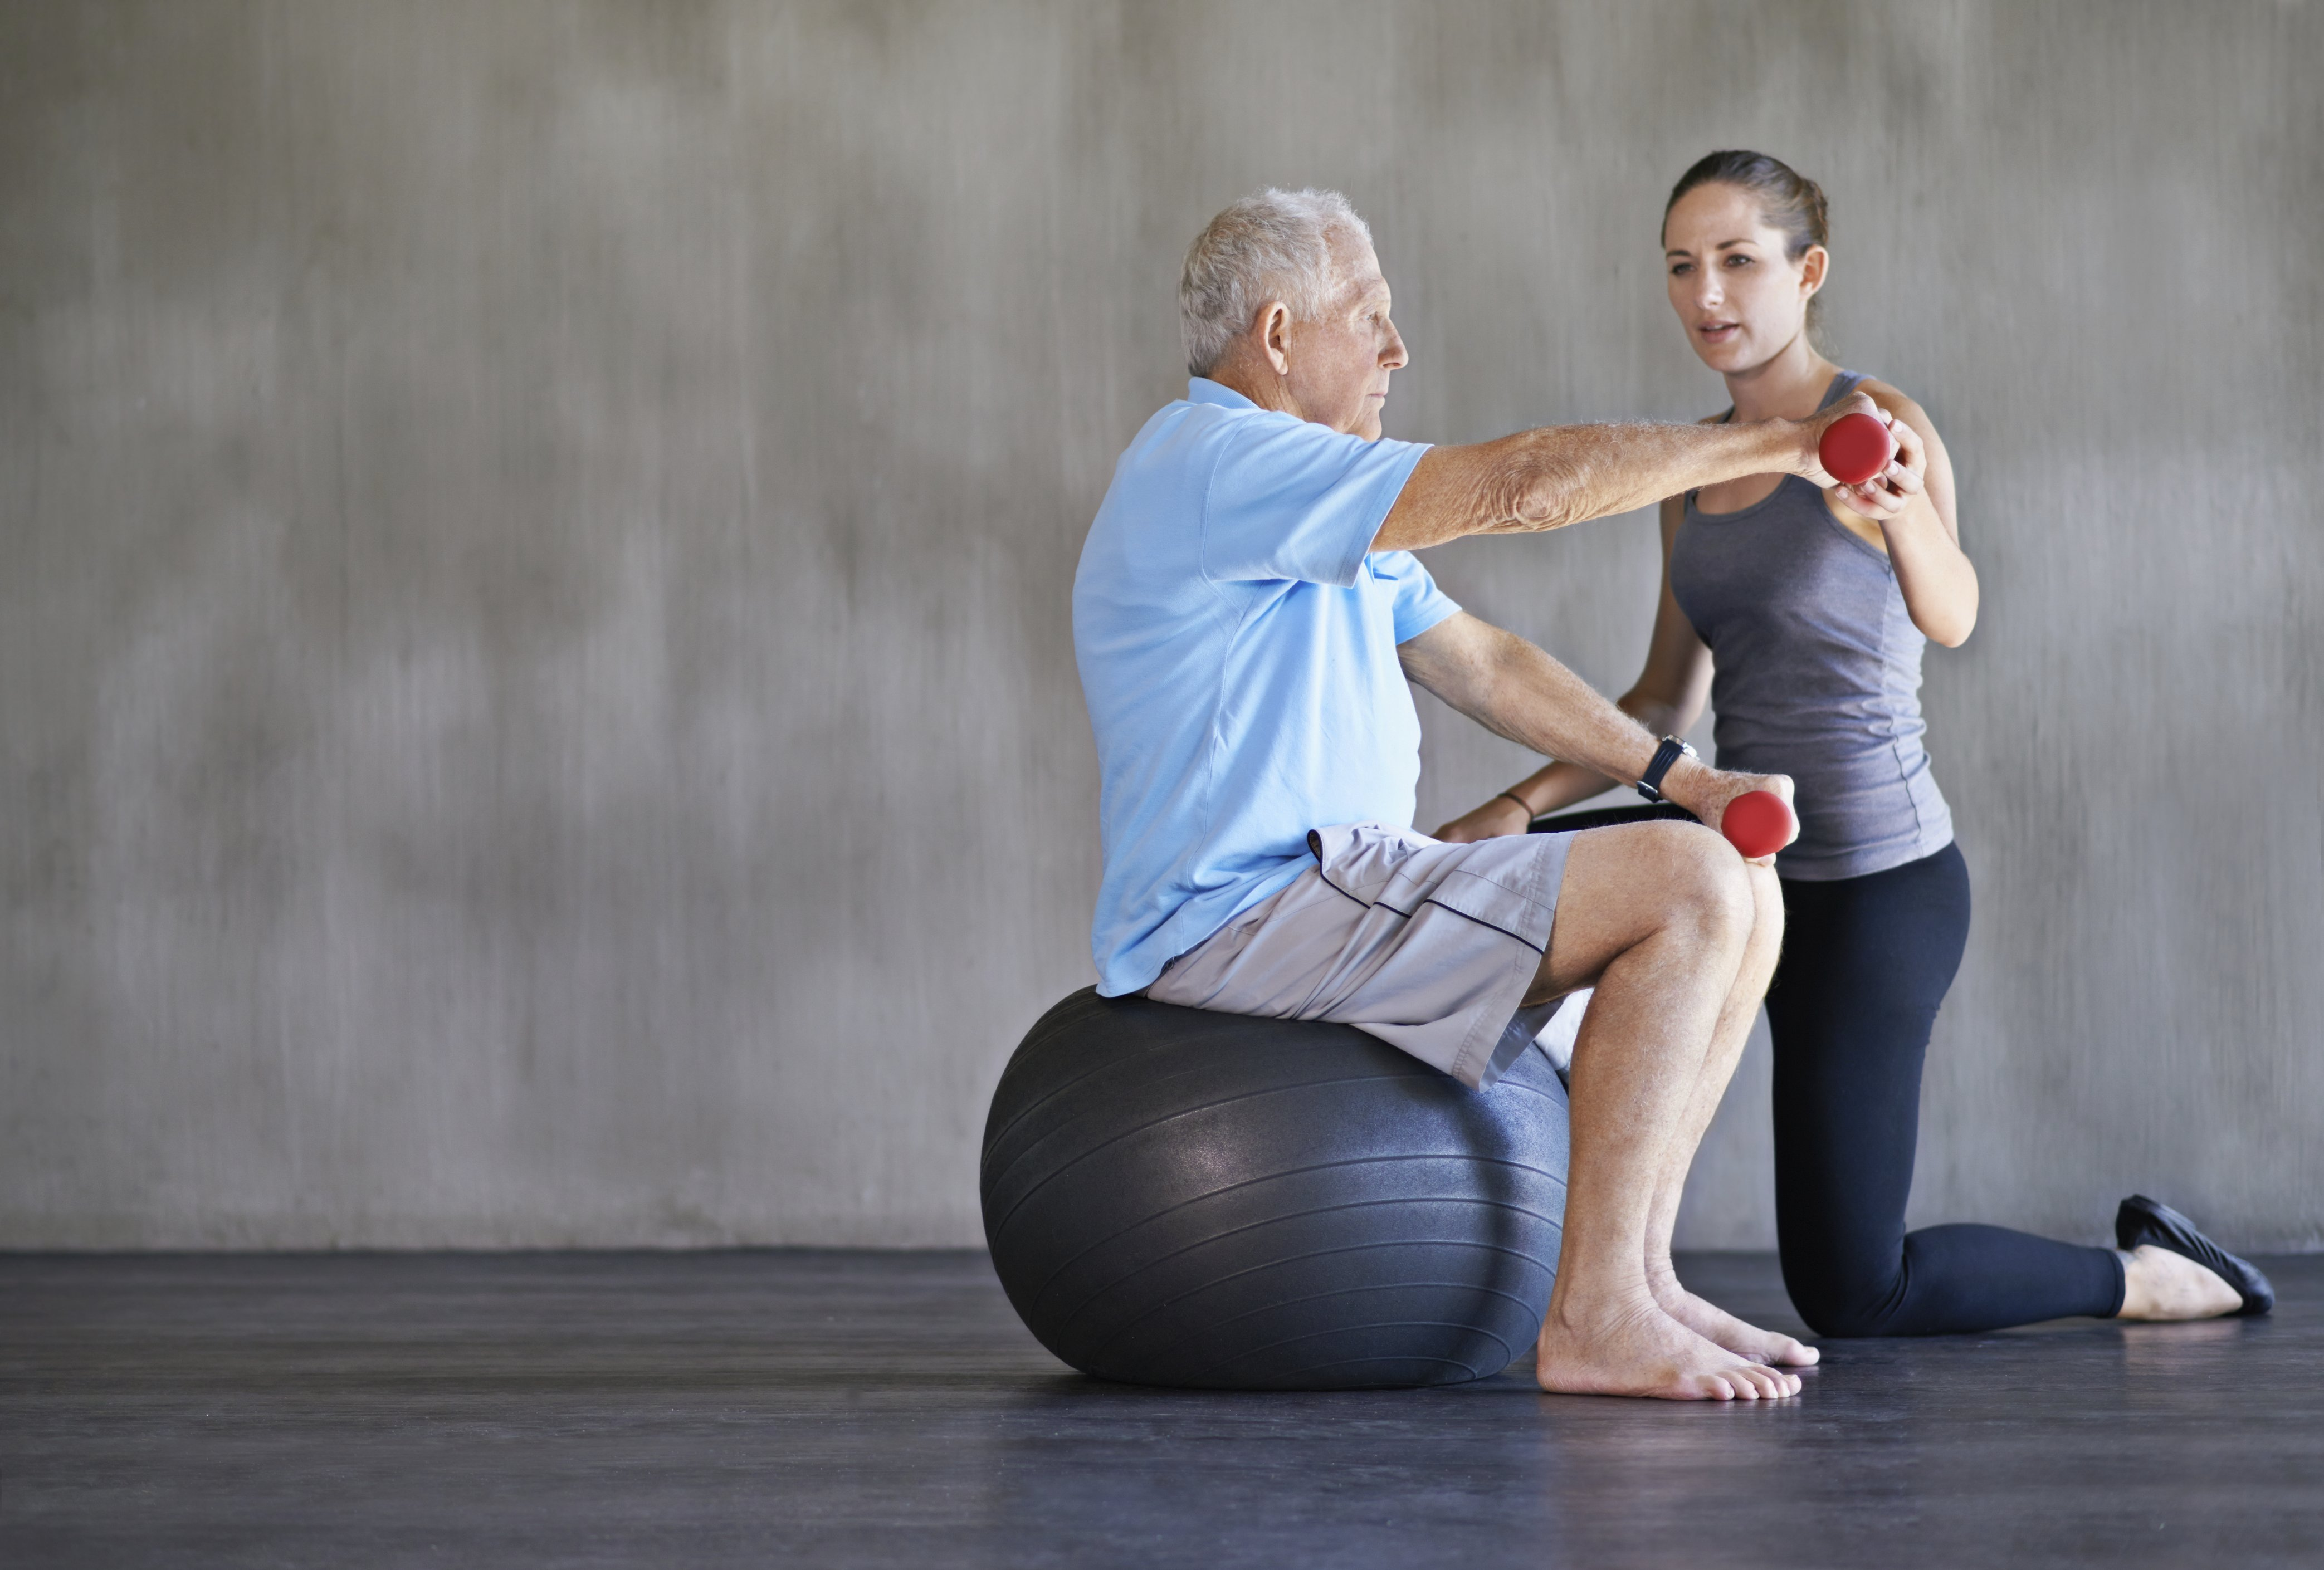 Exercise makes a difference to cancer outcomes: here's how to add it to standard care